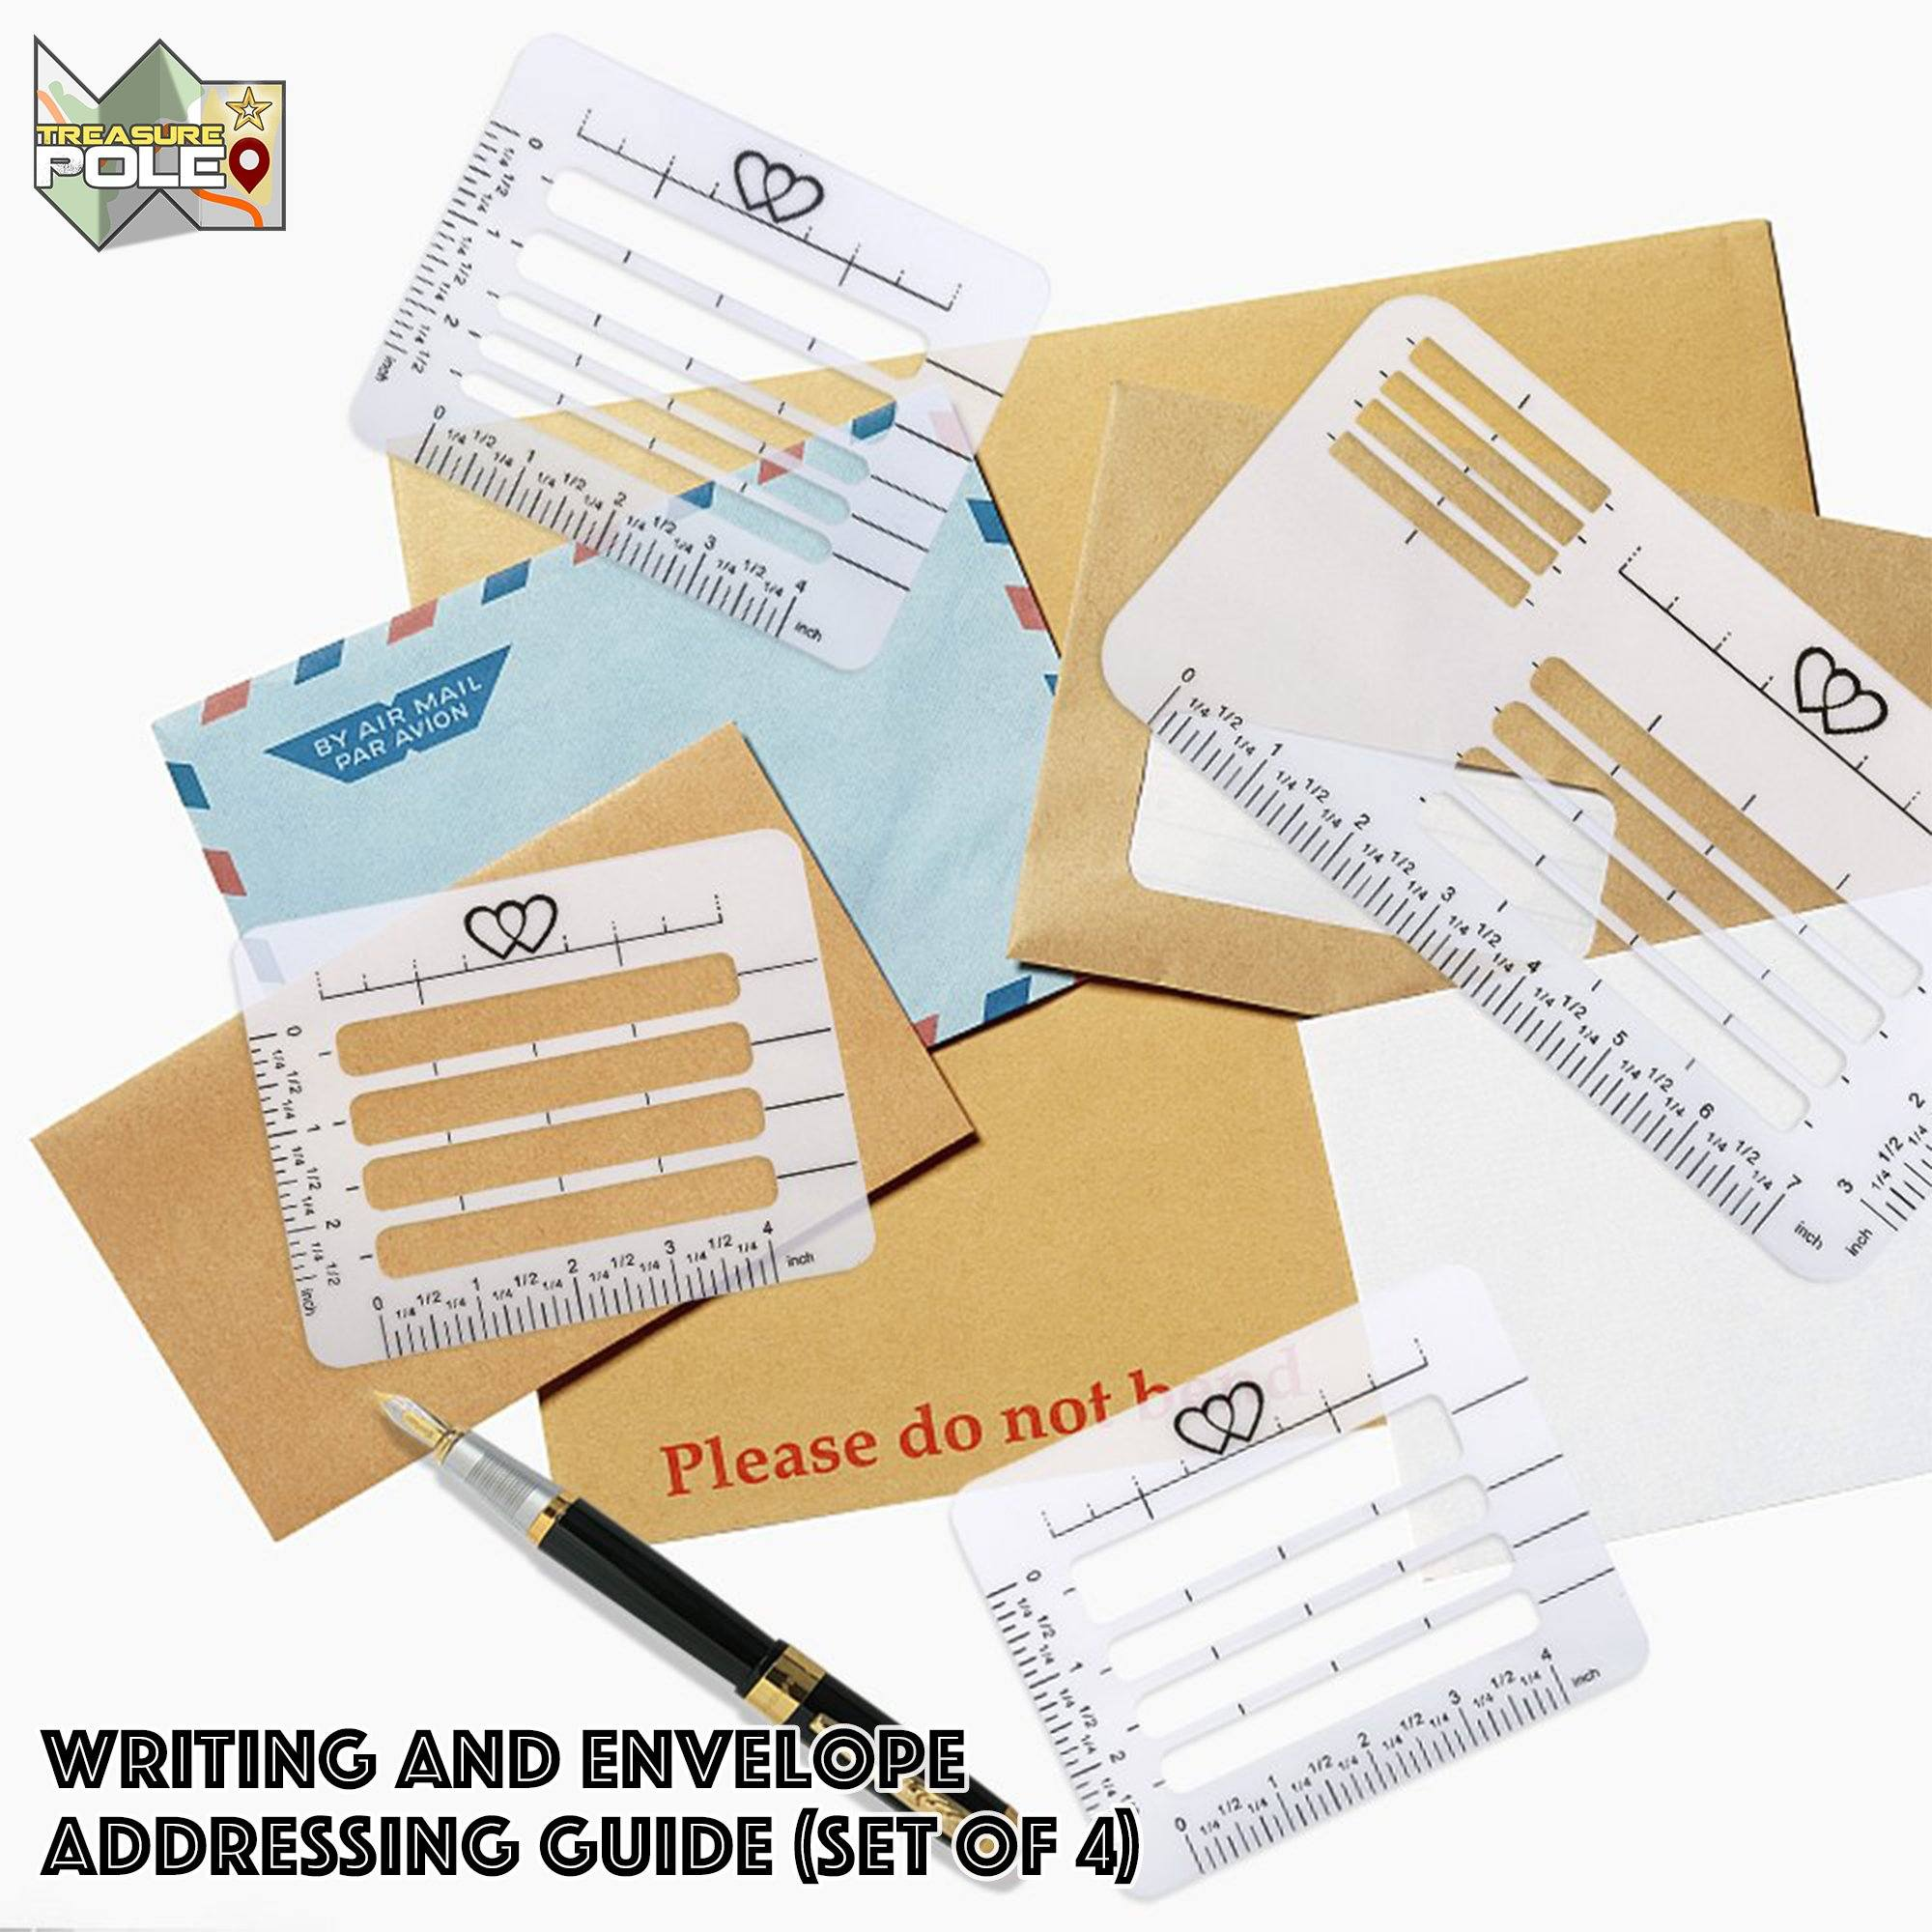 Envelope Addressing Guide (Set of 4)